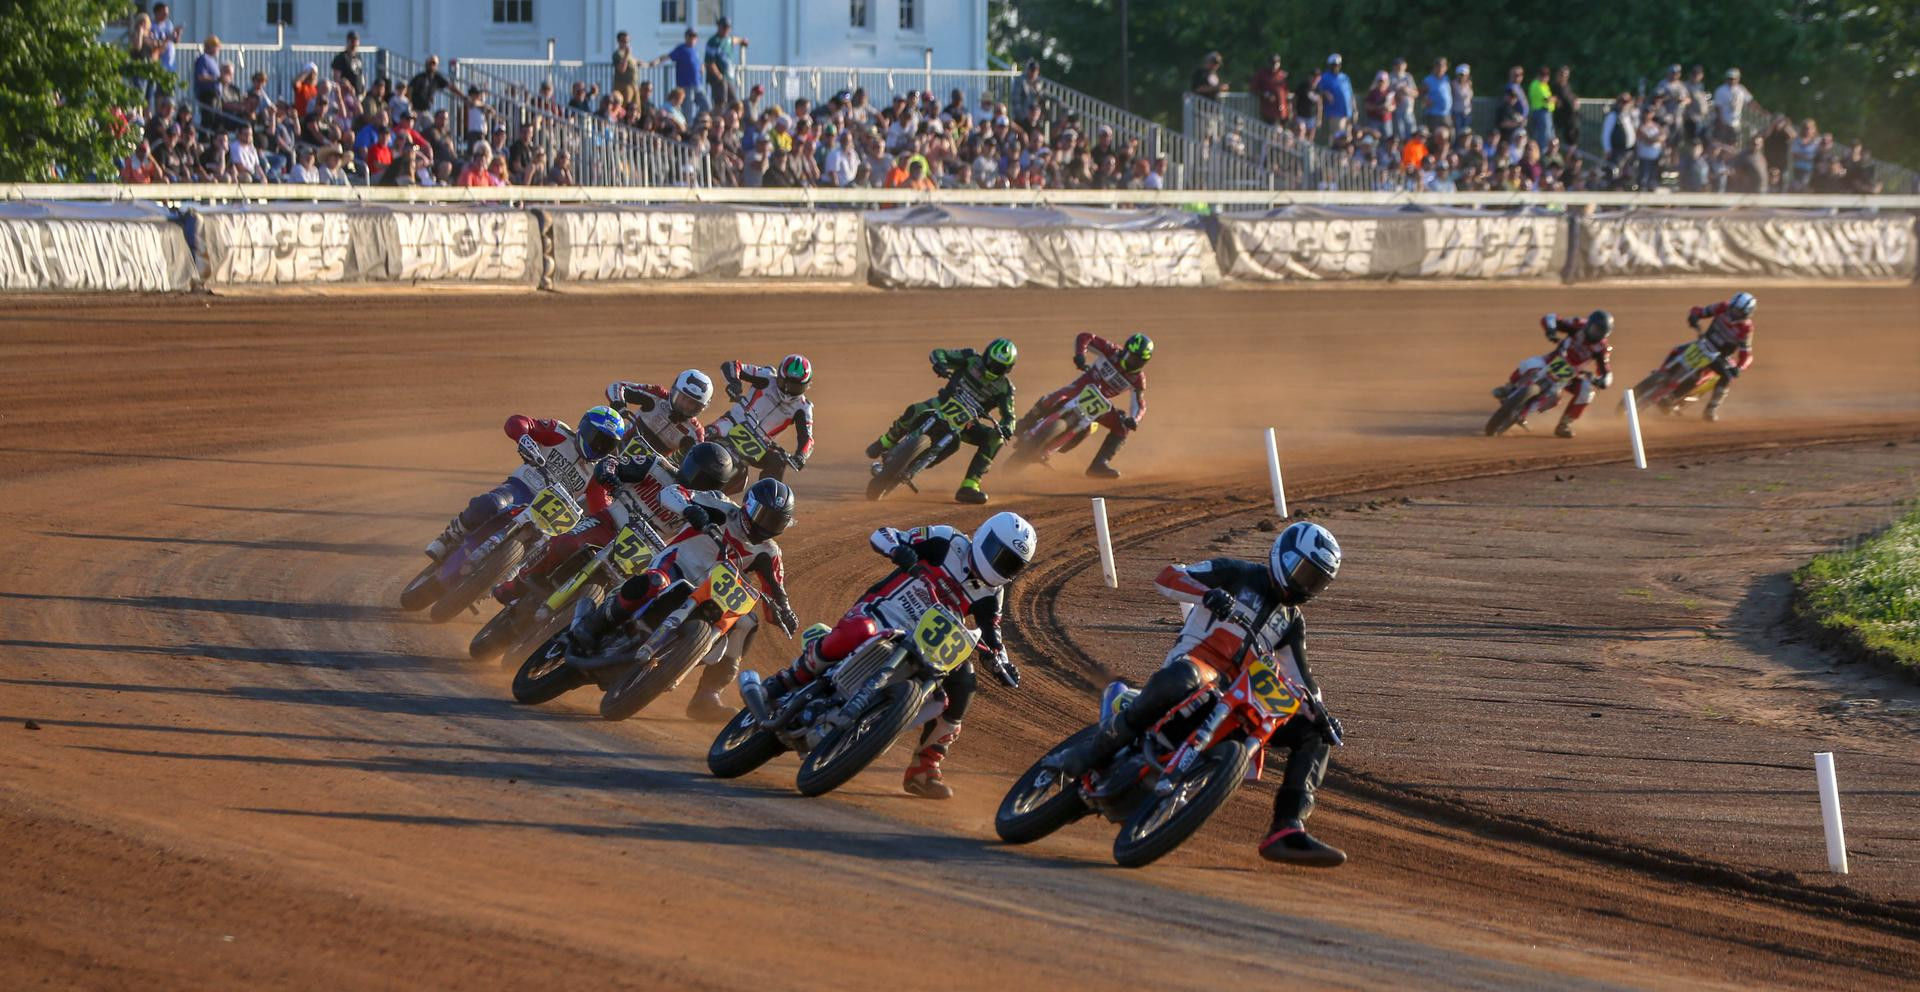 Action from an AFT Singles race at the Red Mile in Kentucky in 2018. Photo by Scott Hunter, courtesy of AFT.